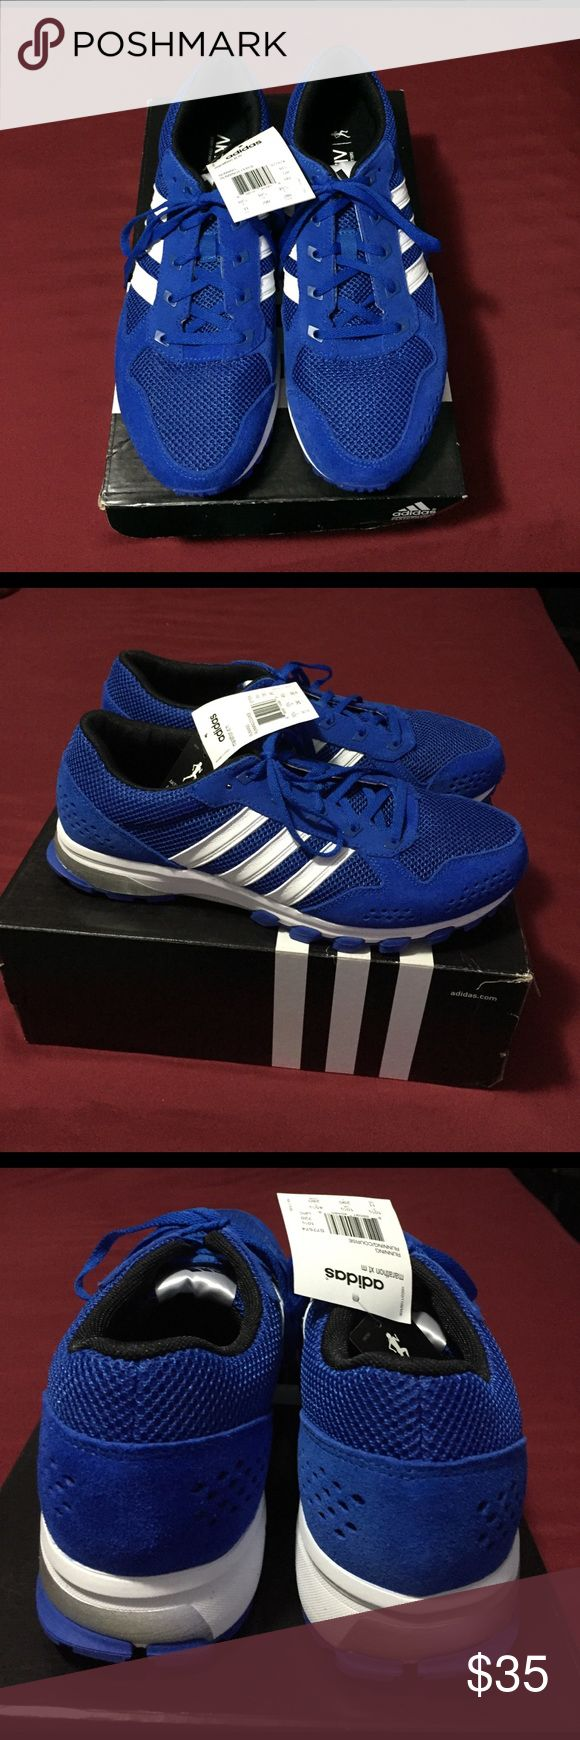 New Authentic Adidas men's shoes Marathon XT . Nice mesh like and blue cut out suede accent Adidas Shoes Sneakers